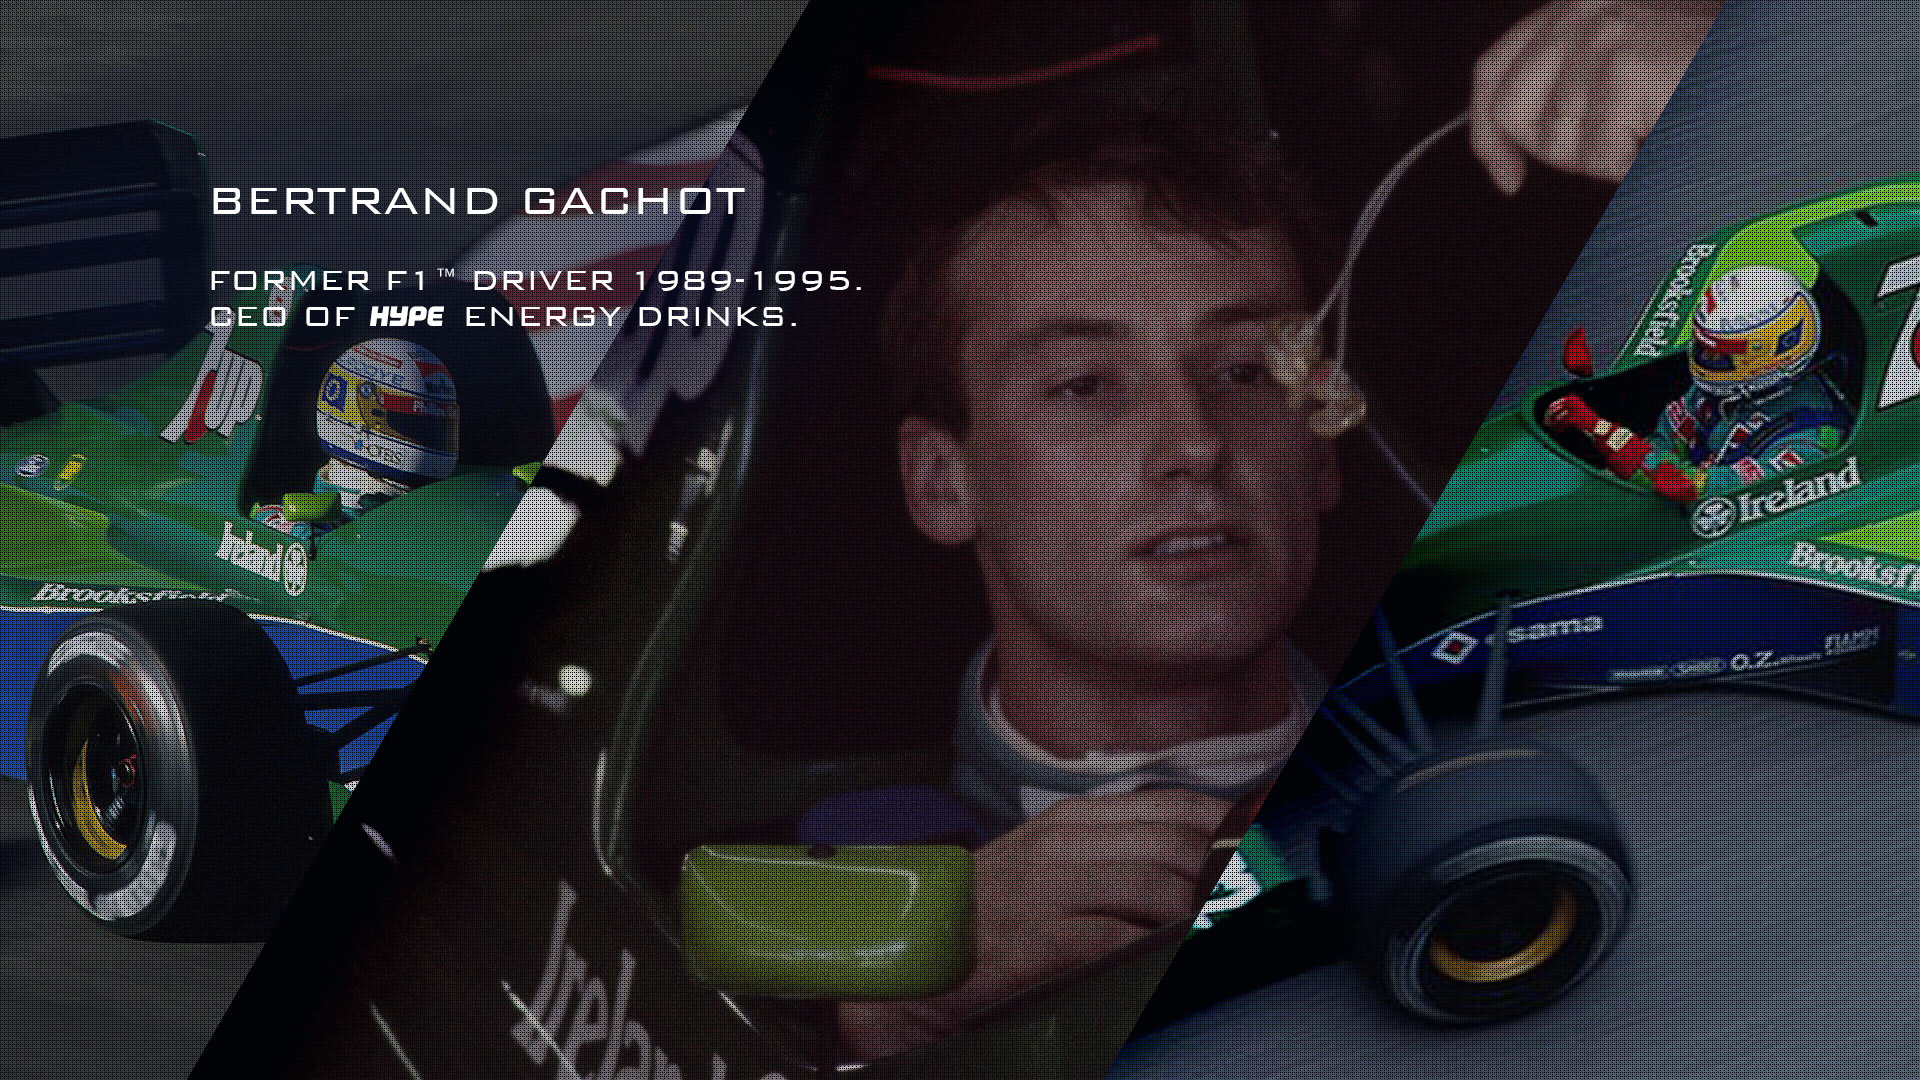 Bertrand Gachot - Former F1 driver - now CEO of Hype Energy Drinks